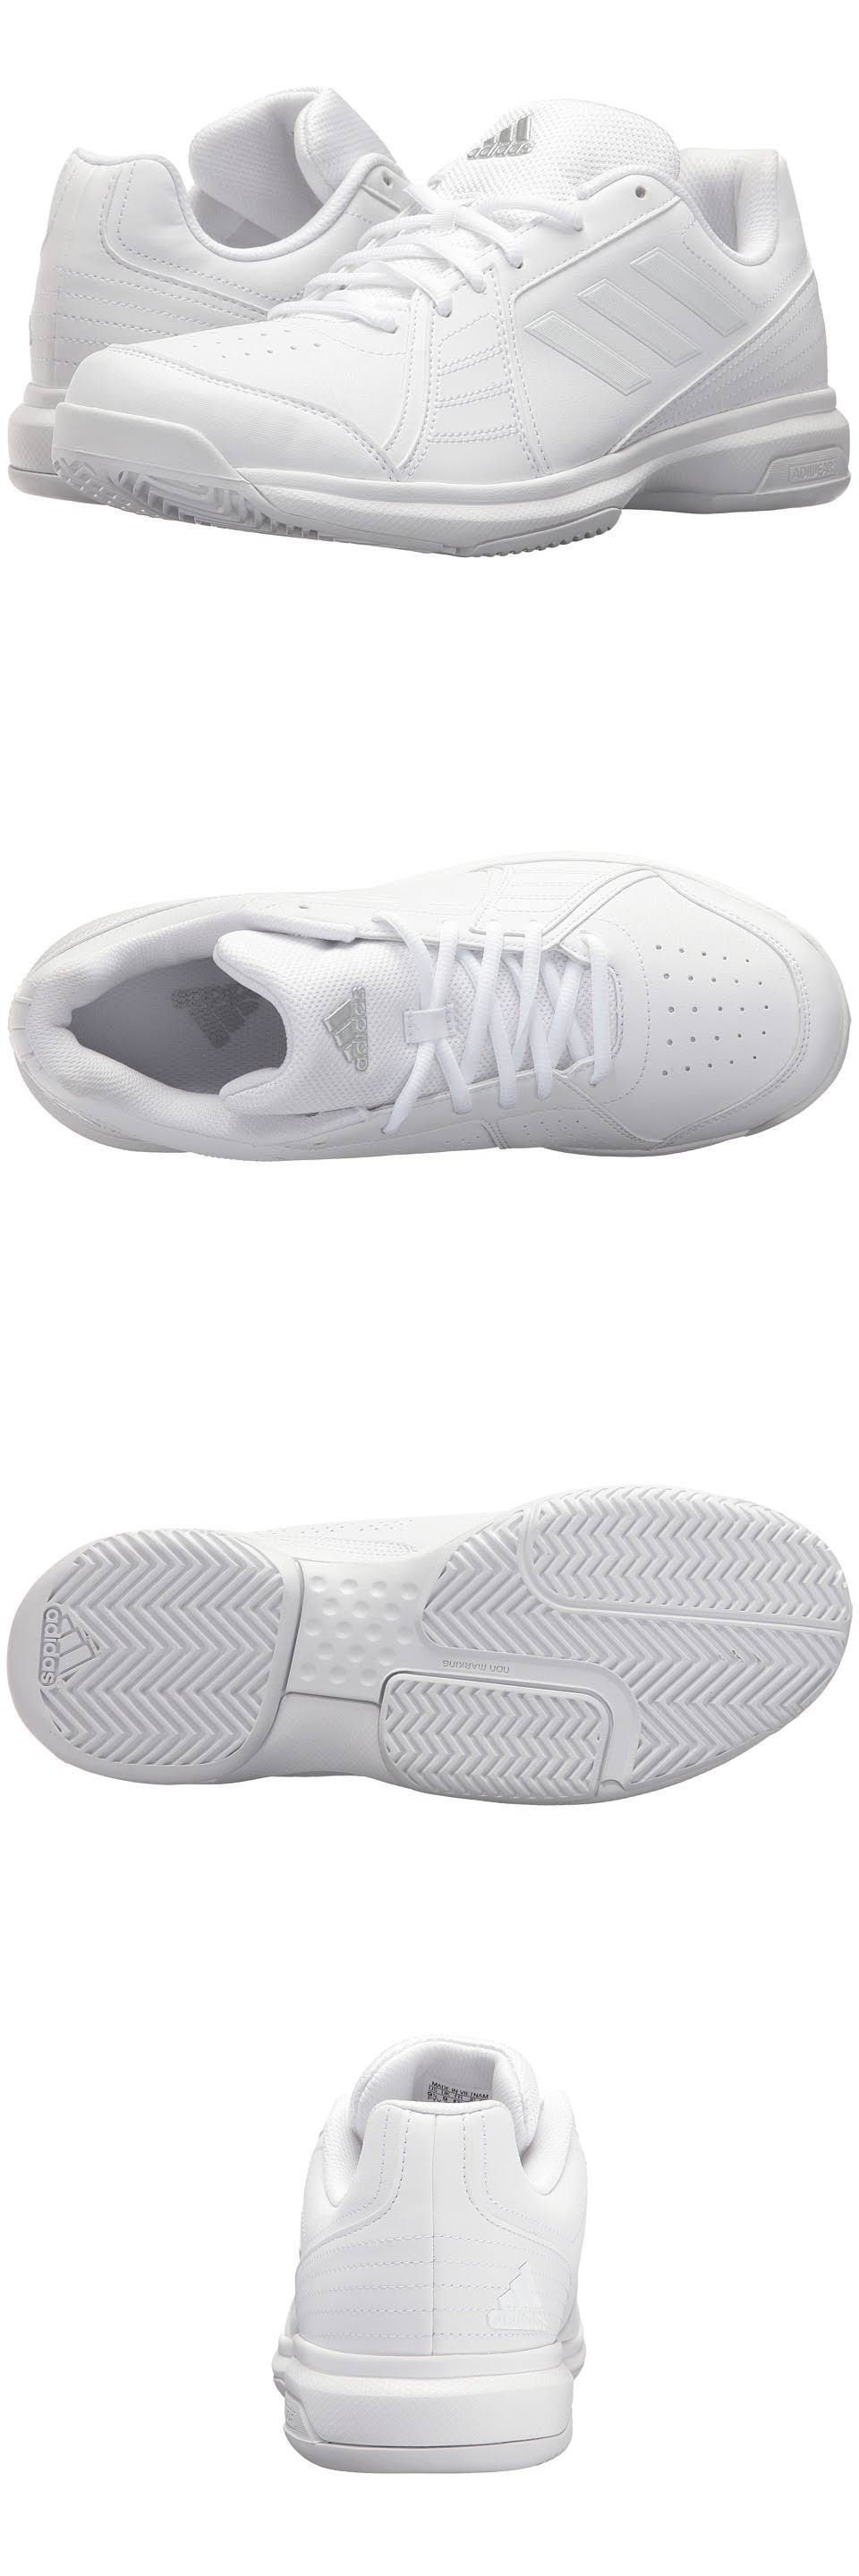 size 40 7bf5c e95db Clothing Shoes and Accessories 62229  Mens Adidas Adizero Approach White Sport  Tennis Athletic Shoes Cq1855